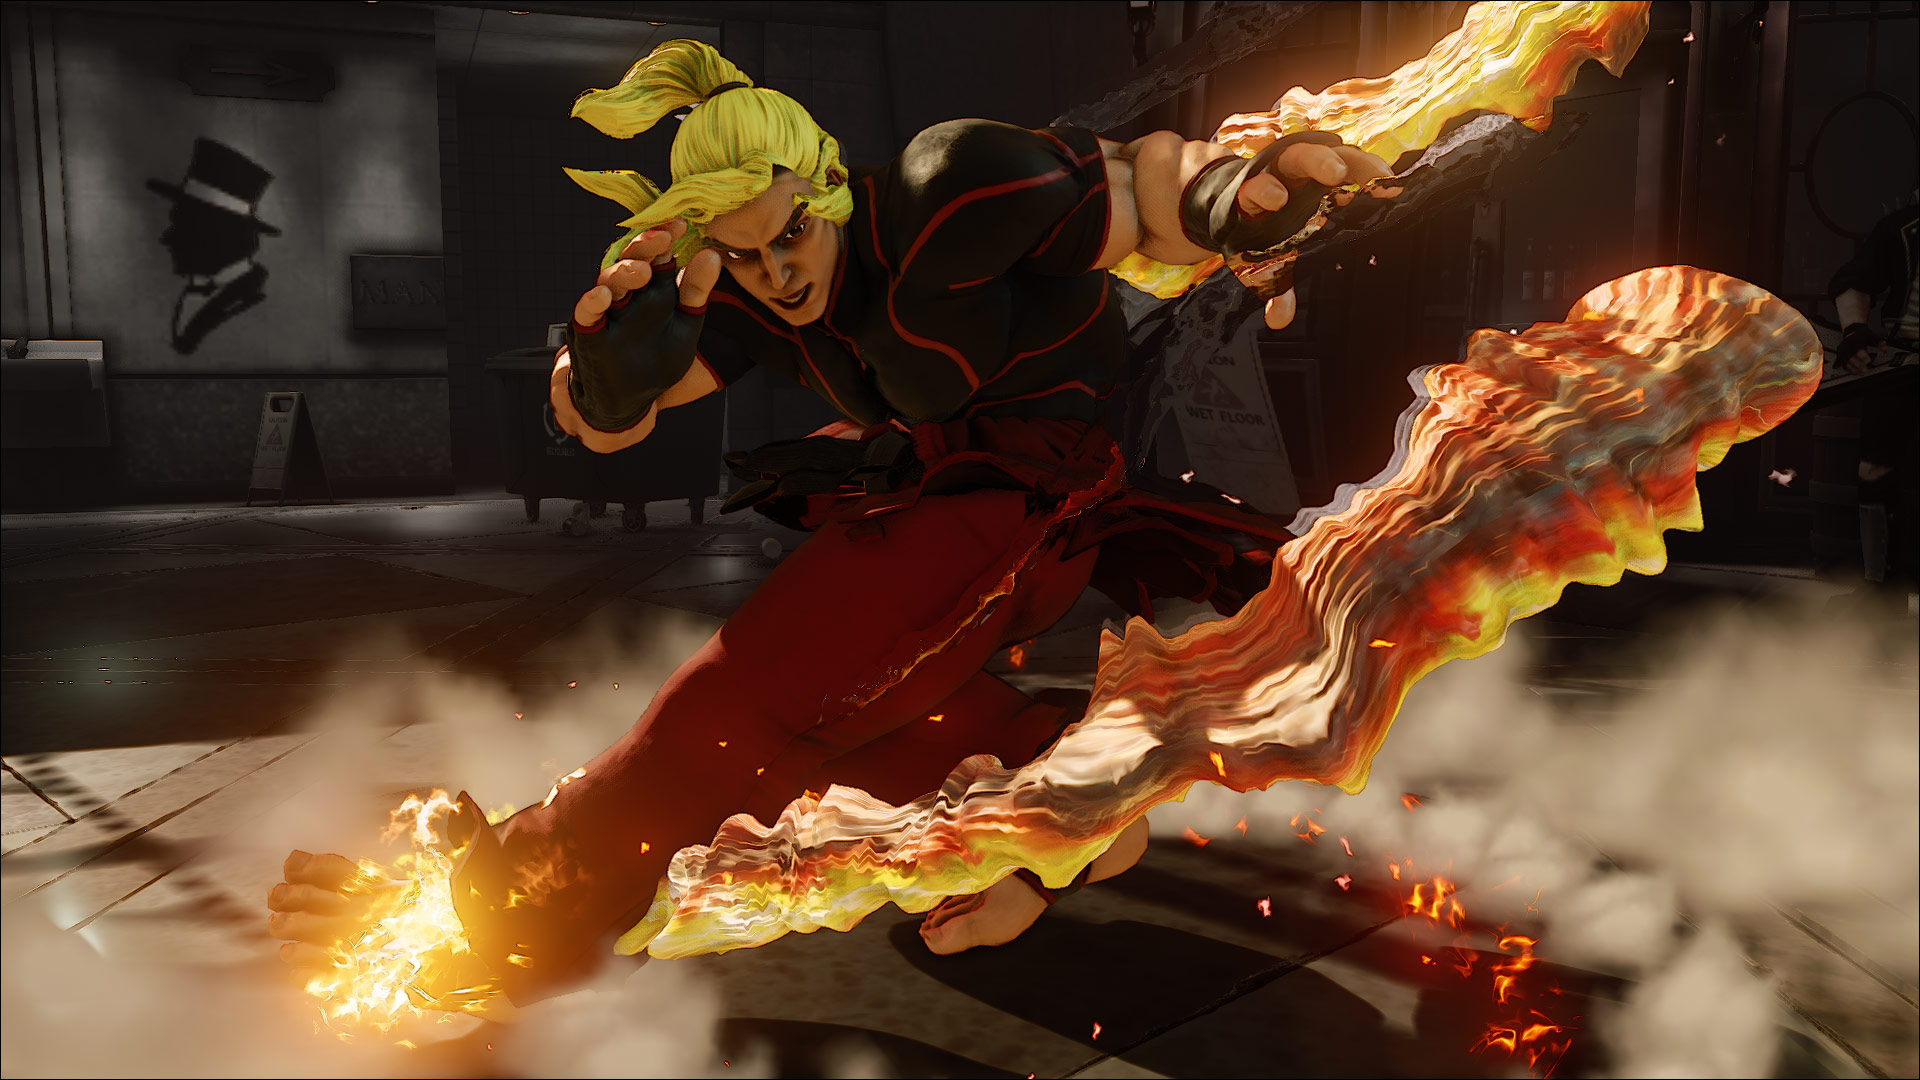 Ken Street Fighter 5 SDCC 2015 reveal 11 out of 13 image gallery